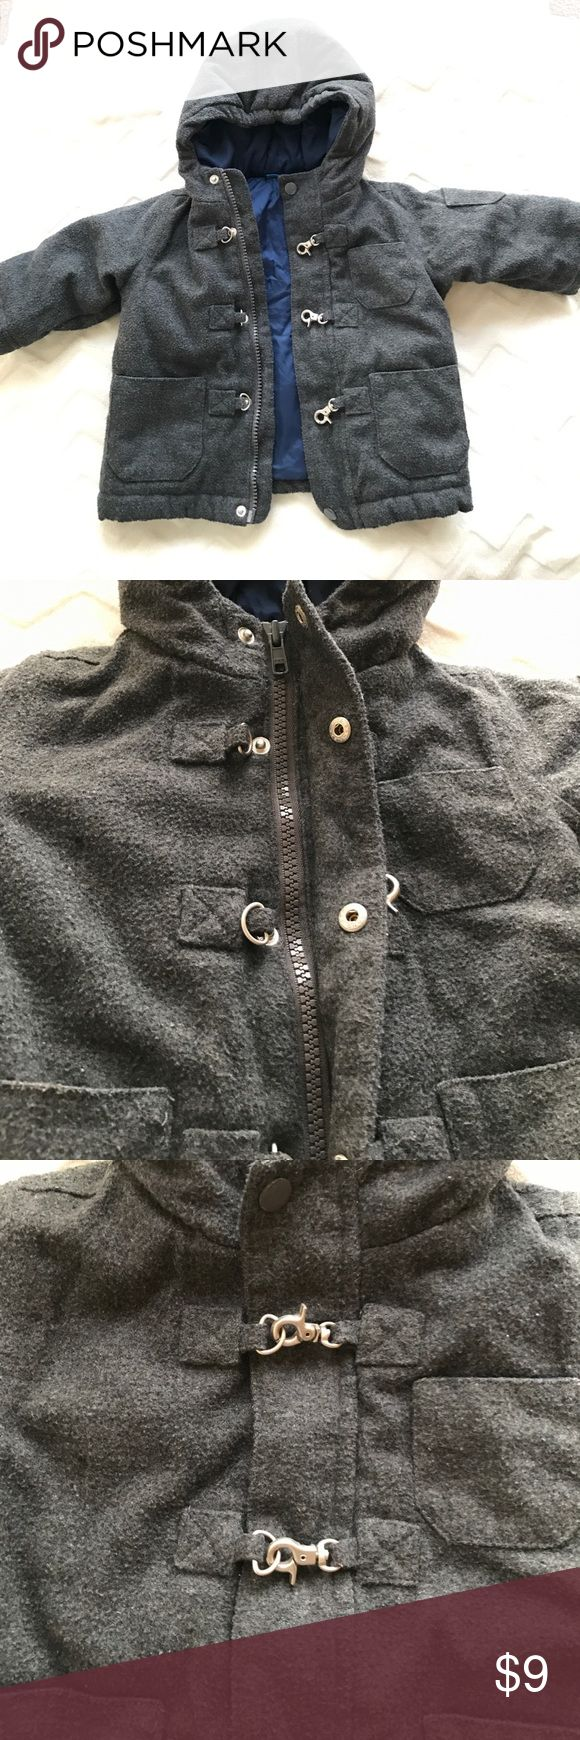 Thick grey zip up, button up & clip jacket Very comfy & warm! I know summers approaching but for those who are excepting a bundle during winter you can save for those cold fall & spring days & nights this jacket is a lifesaver! It's grey with a zipper, button up & then clasps together. Puffer jacket like inside polyester/wool feeling on the outside. Super cute can be for boys or girls. Size 6-9 months runs big. Worn with love in good condition Jackets & Coats Puffers